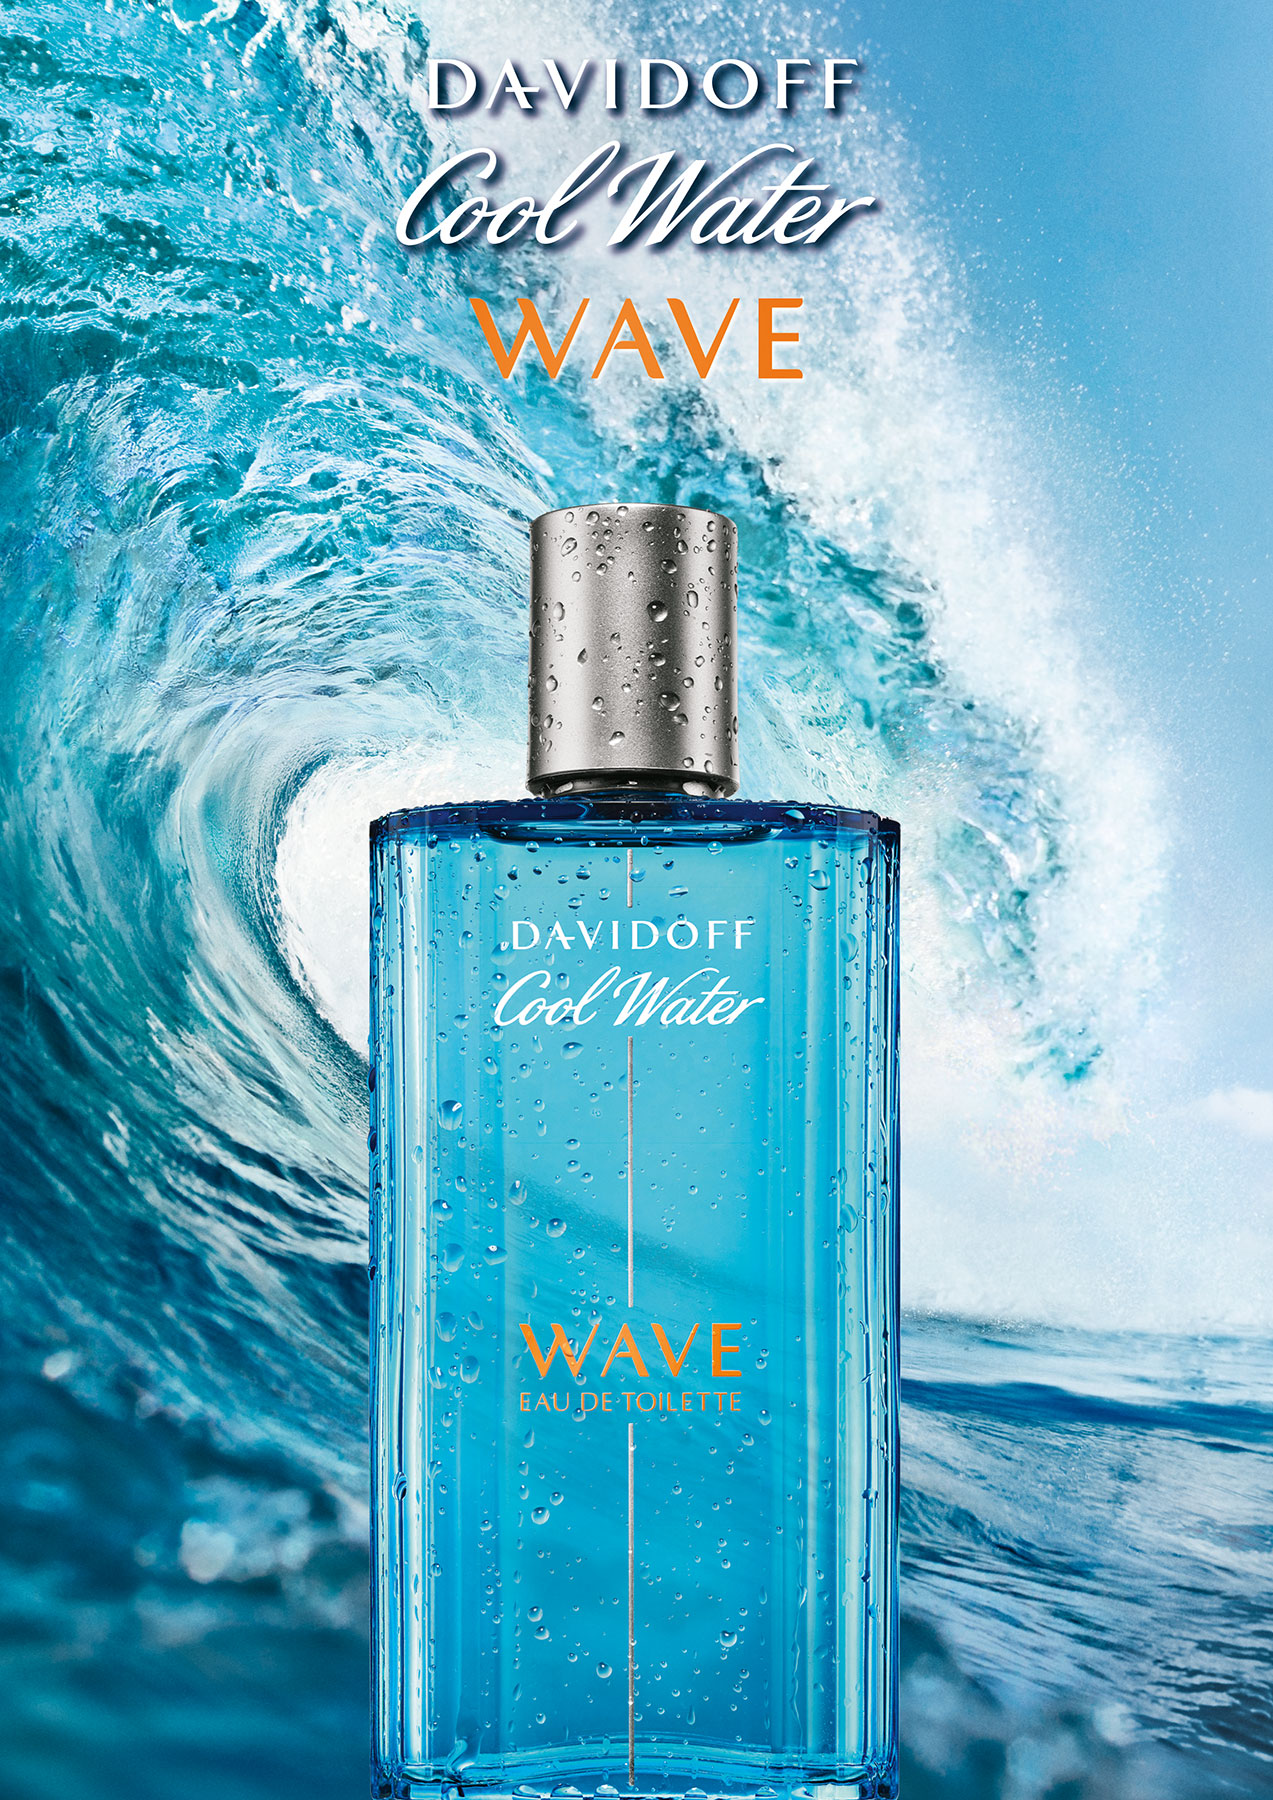 Cool Water Wave Davidoff Cologne A New Fragrance For Men